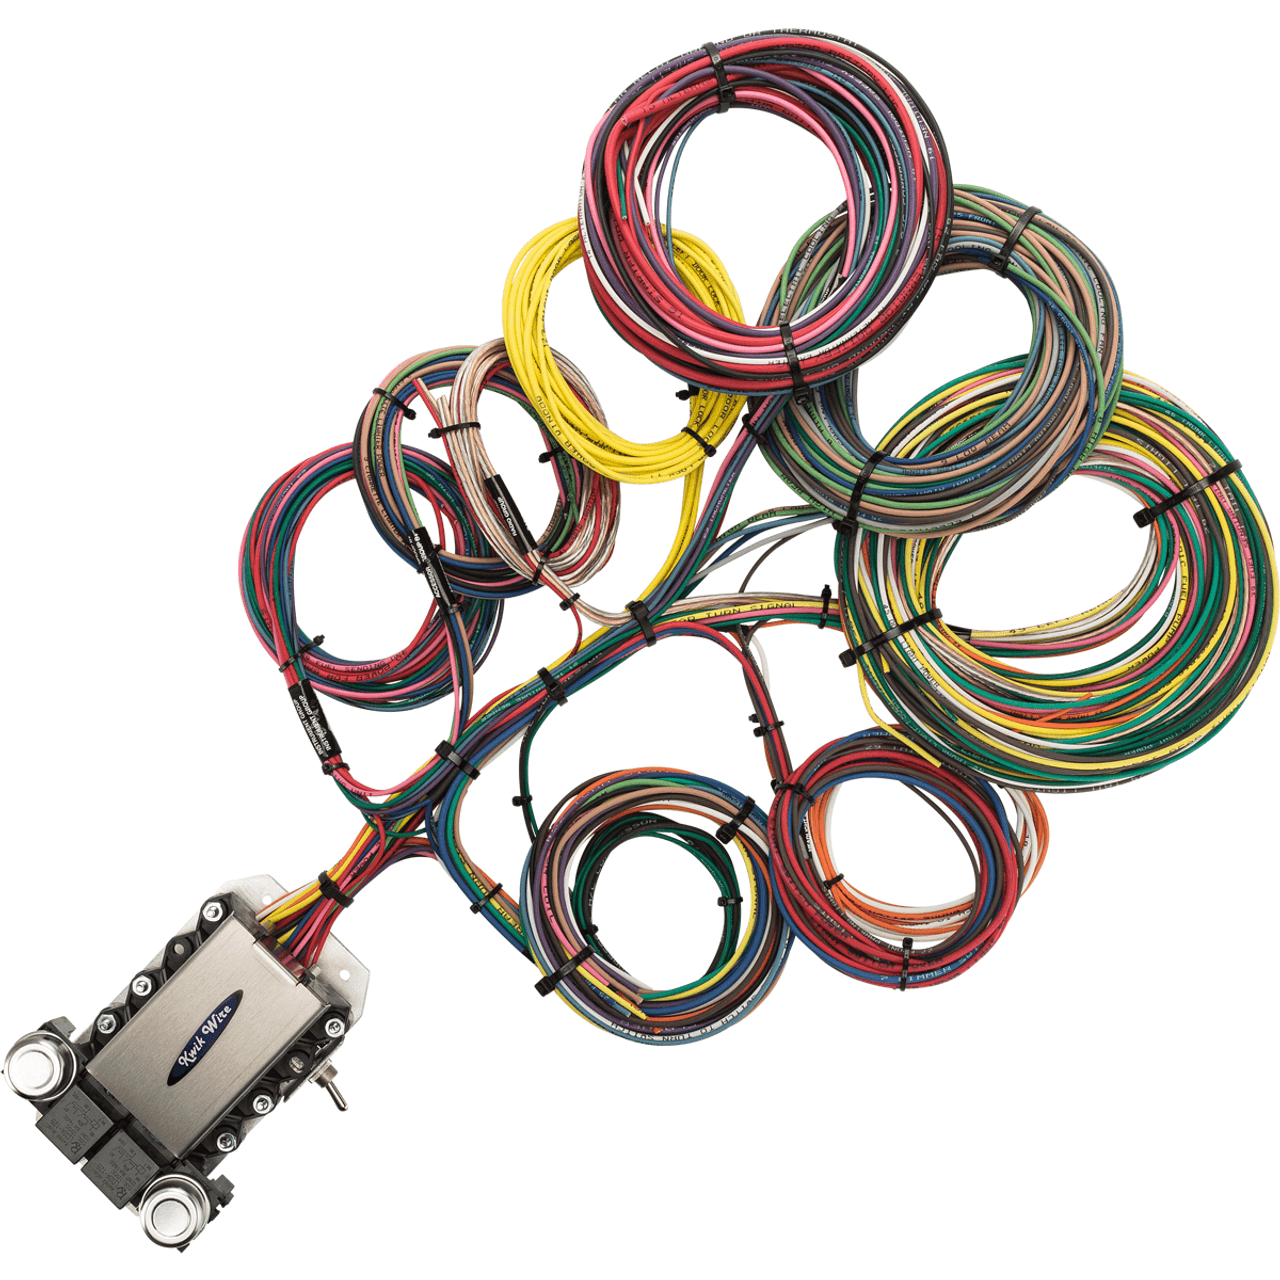 Pleasant 20 Circuit Wire Harness Kwikwire Com Electrify Your Ride Wiring Cloud Oideiuggs Outletorg